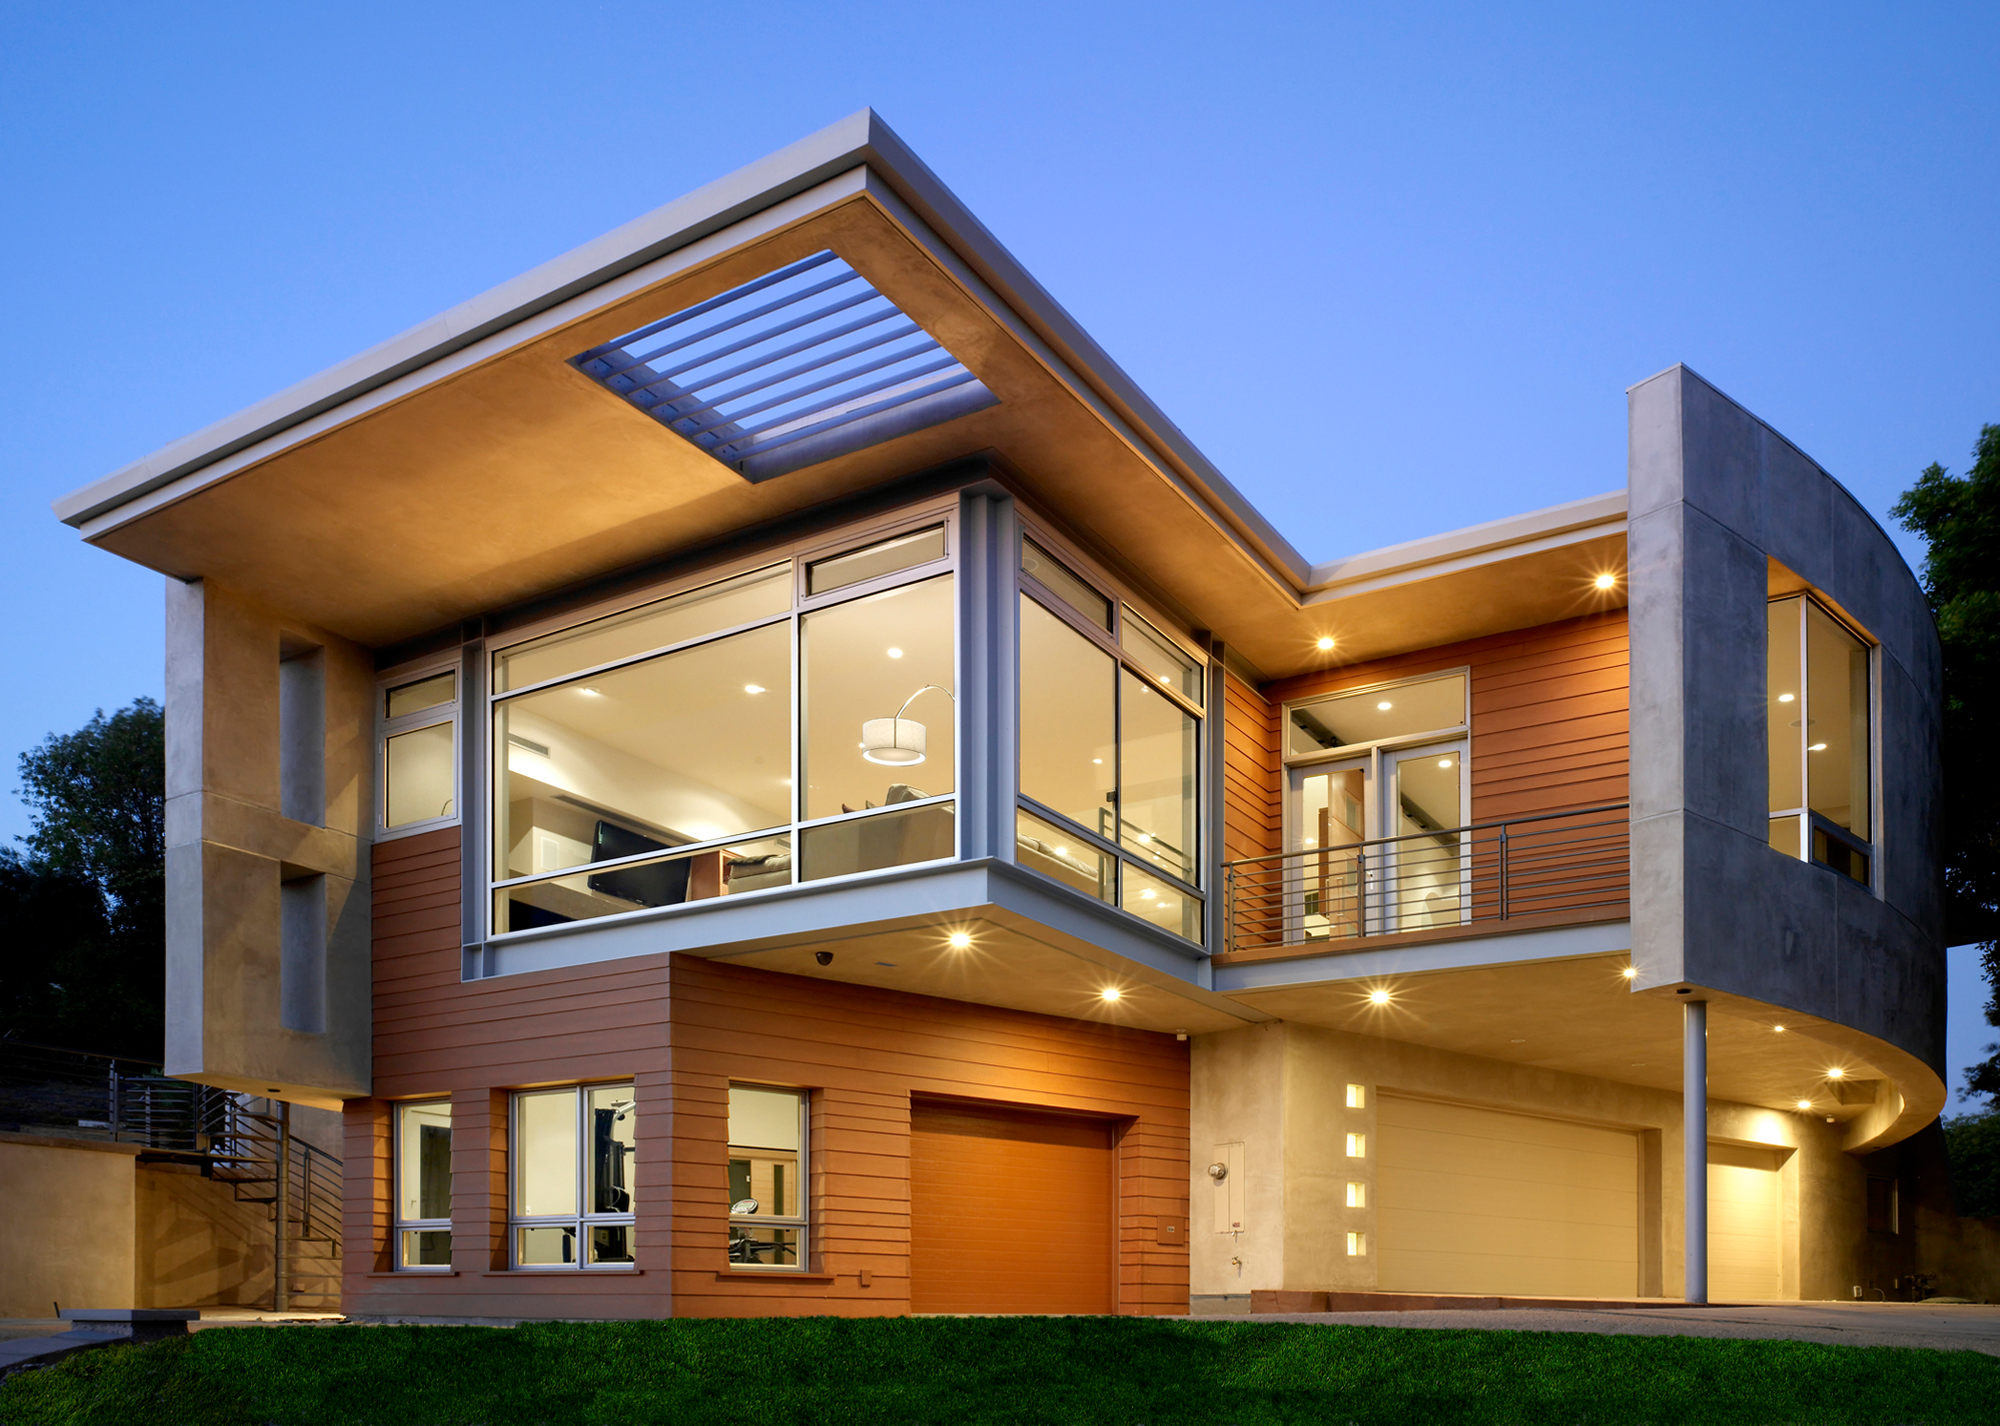 Linear architecture exposed steel beams and floor to ceiling windows craft a modern dream home